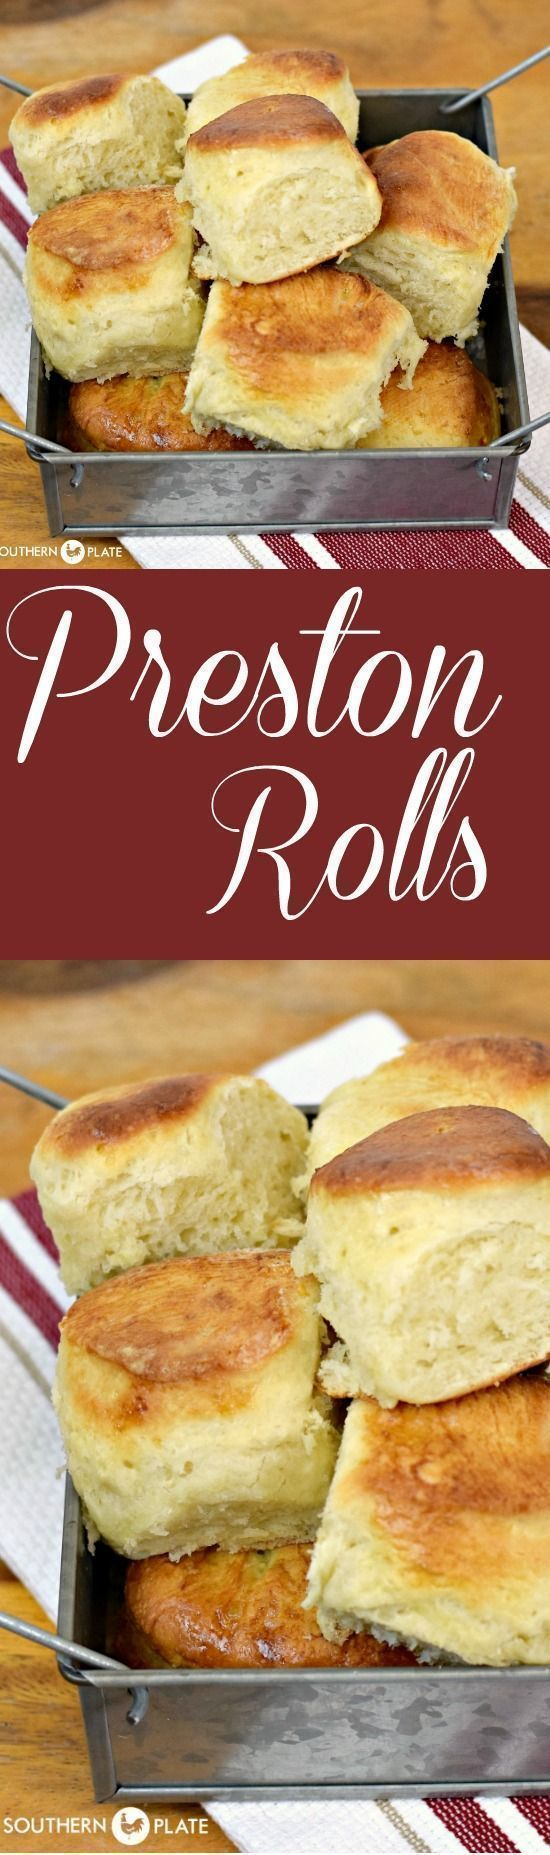 (rapid rise yeast) Preston Rolls - Make this dough on the weekends and keep it in the fridge for hot, yeasty rolls anytime during the busy week!